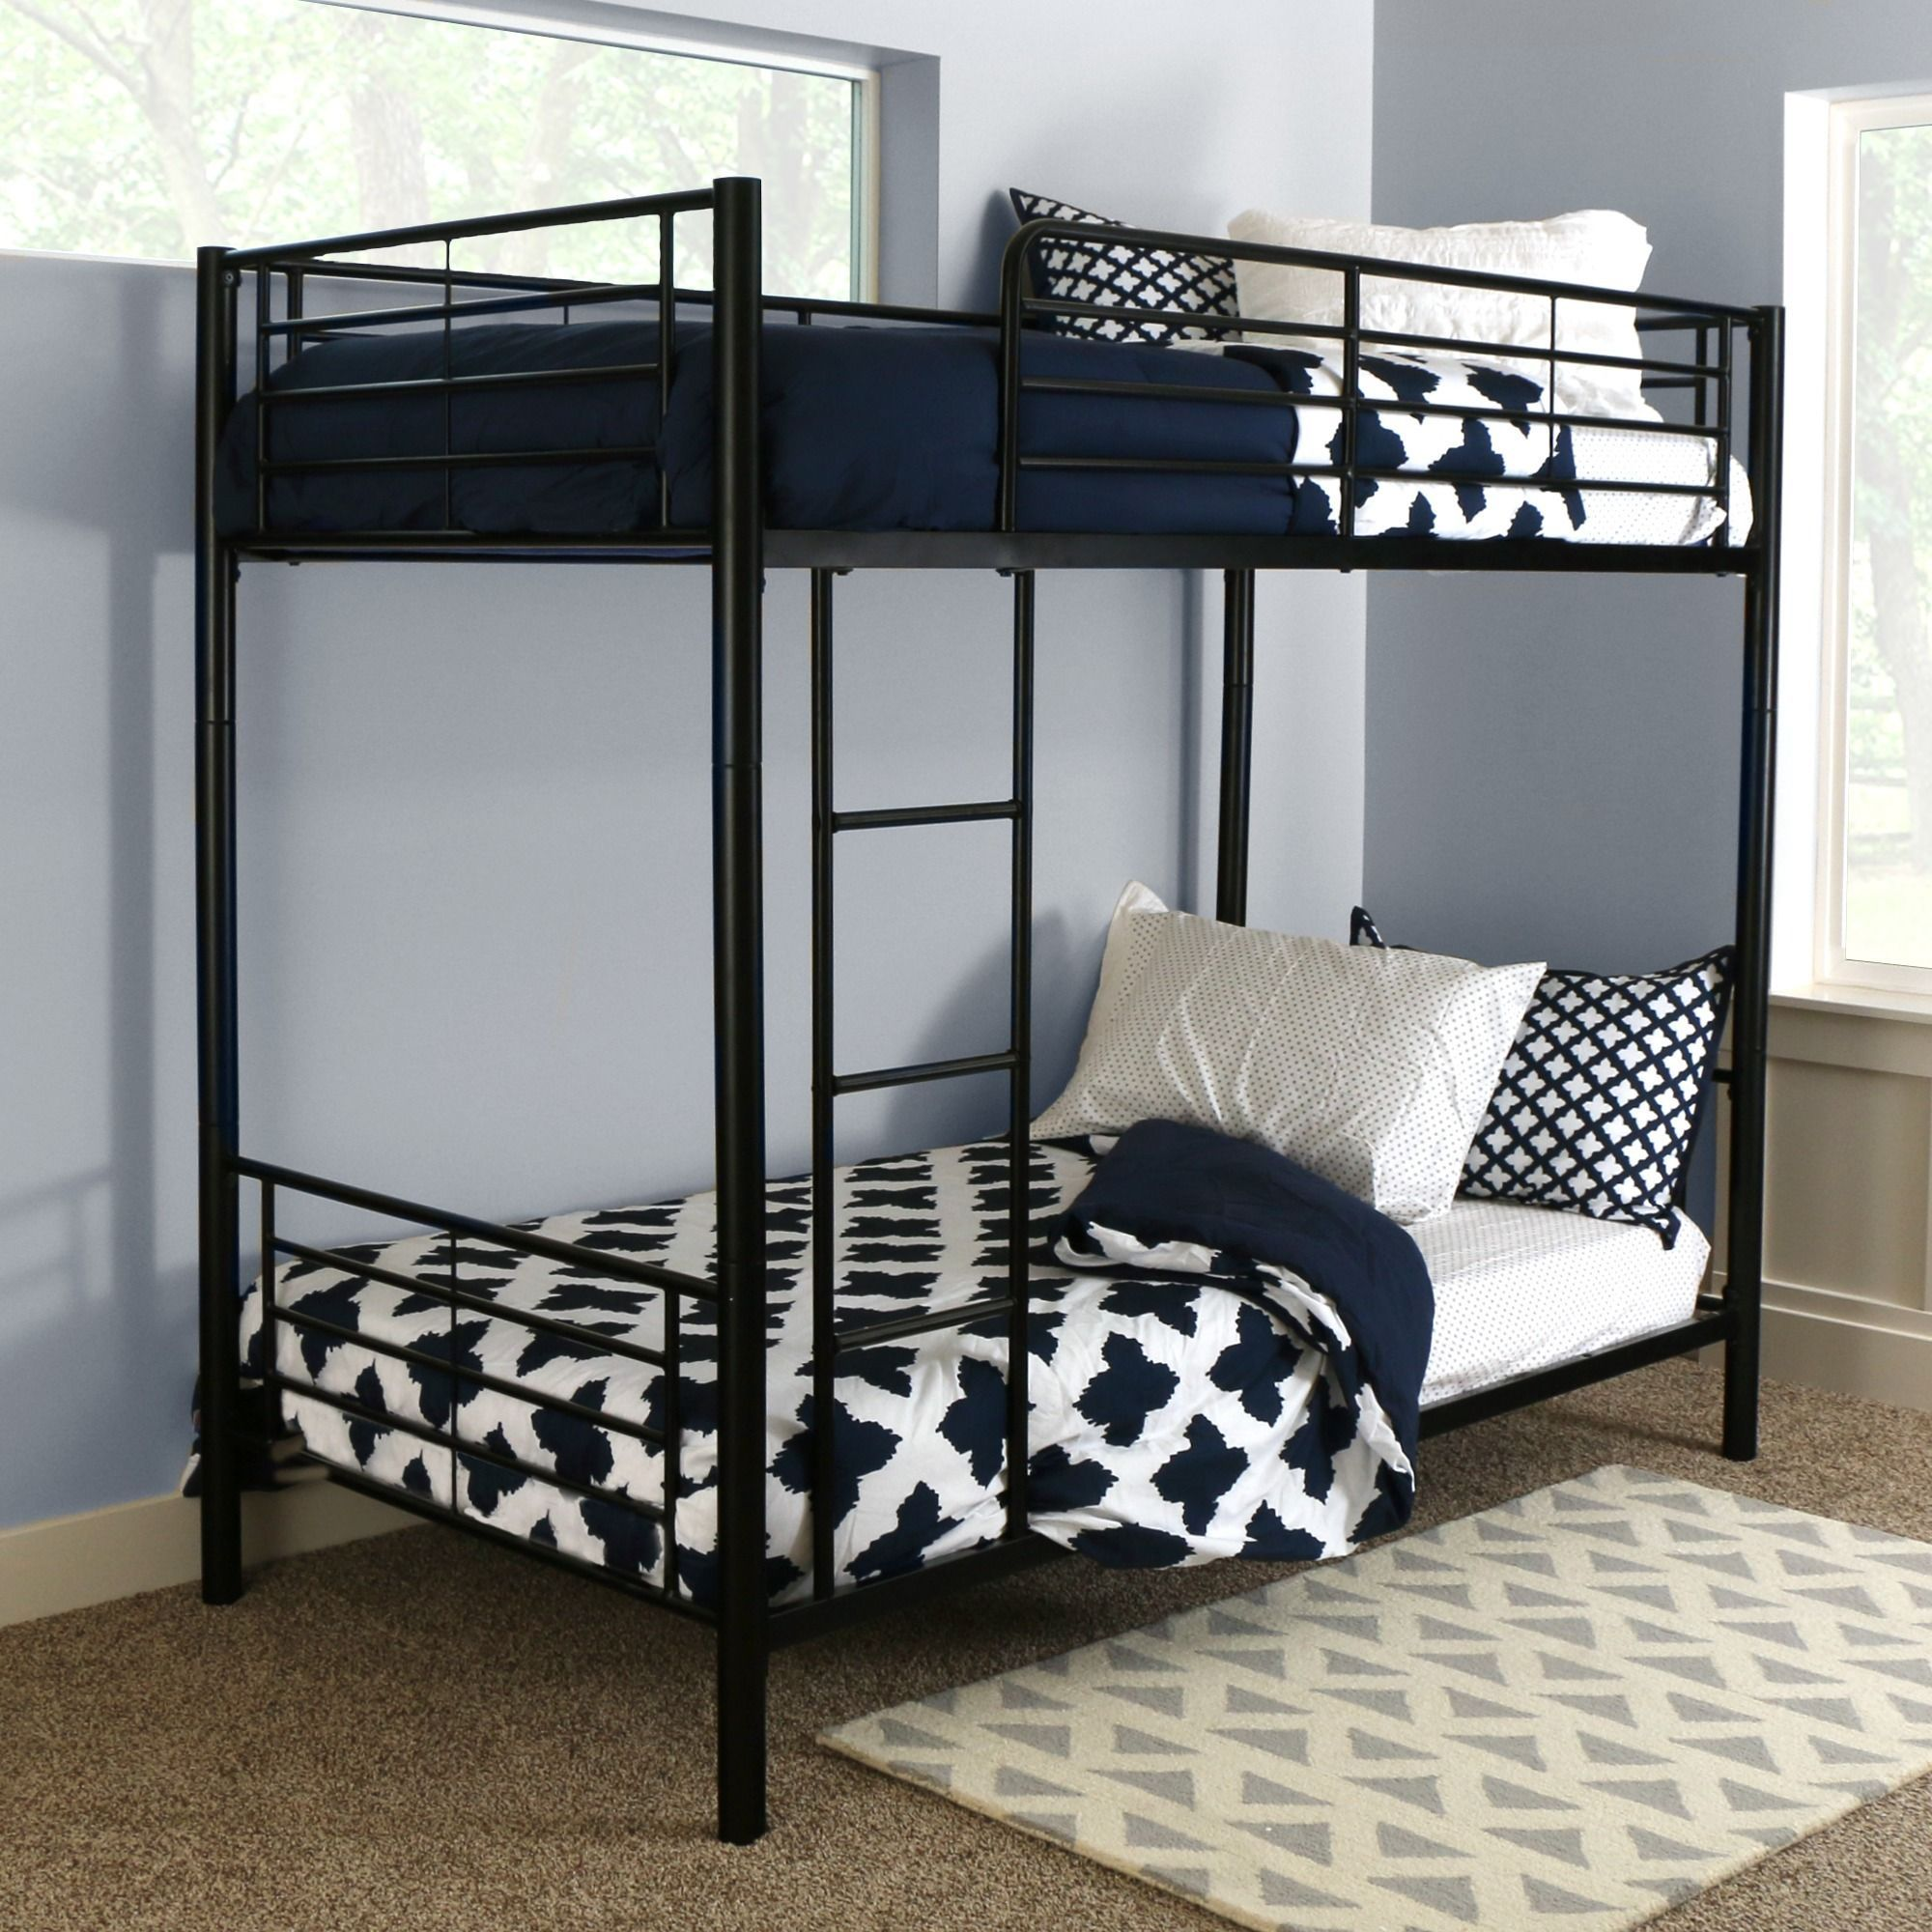 Black Metal Twin Bunk Bed Z Room Bed Bunk Beds Twin Bunk Beds